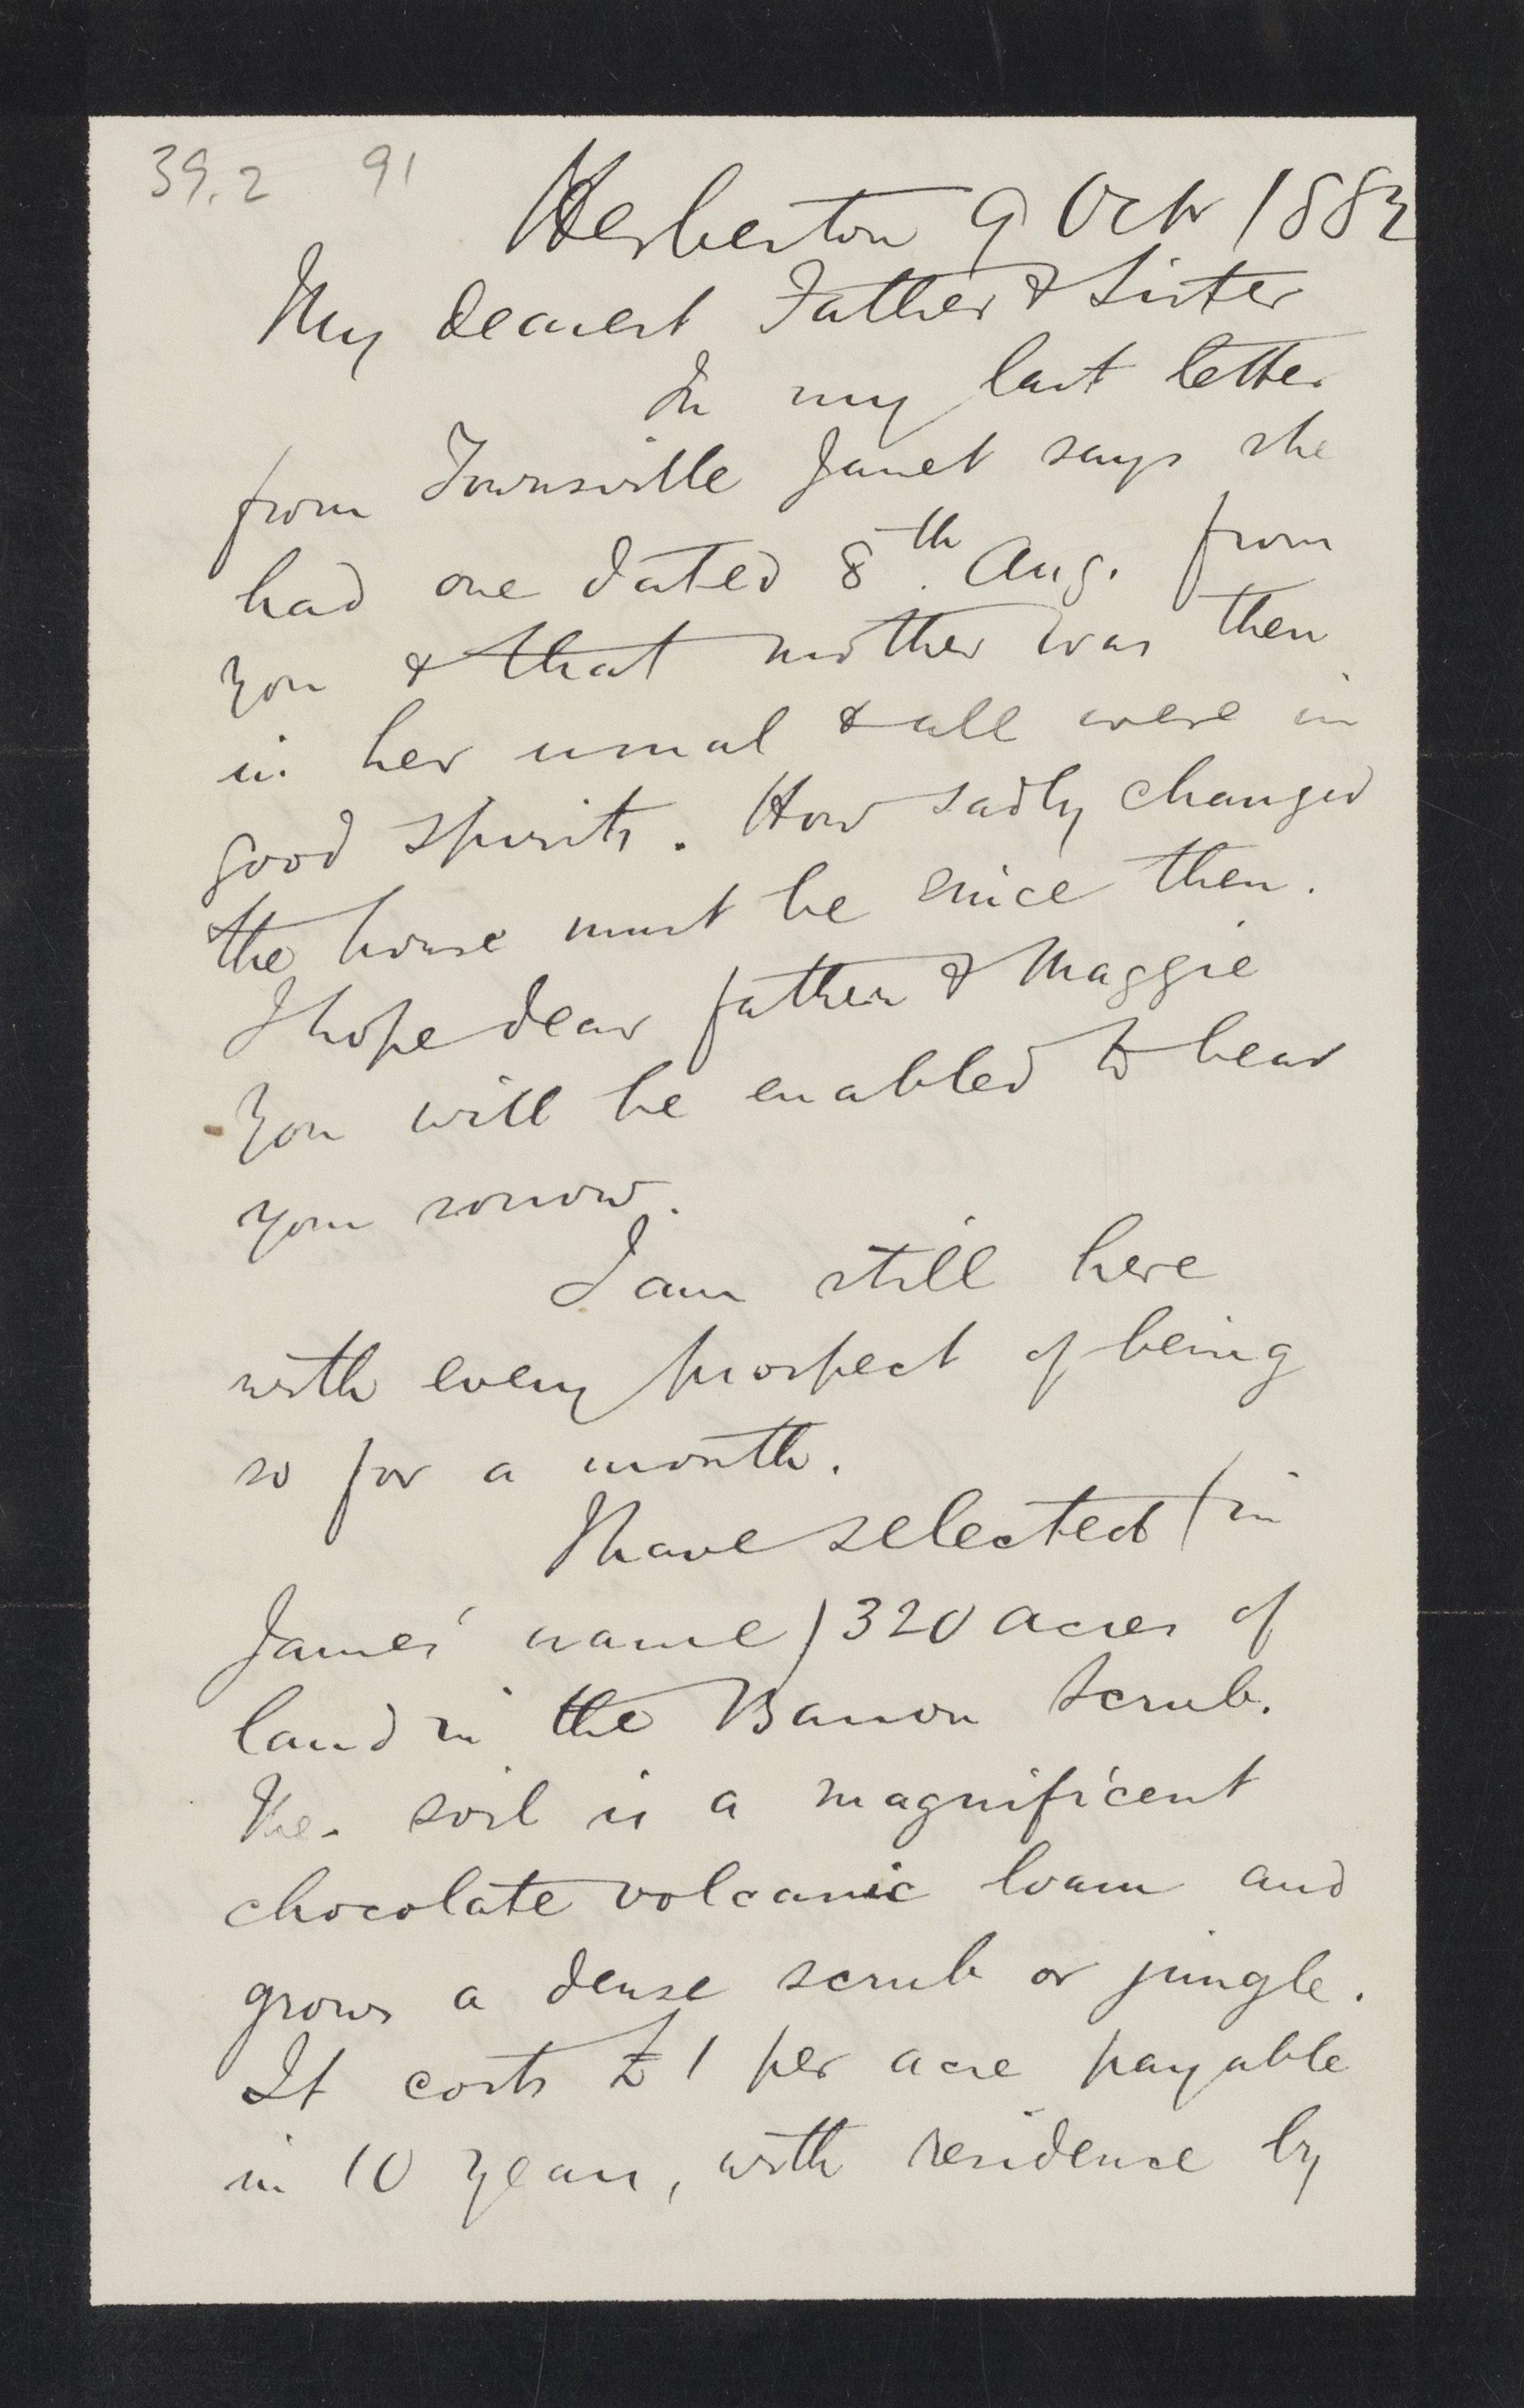 Letter from Robert Logan Jack to Robert and Maggie Jack